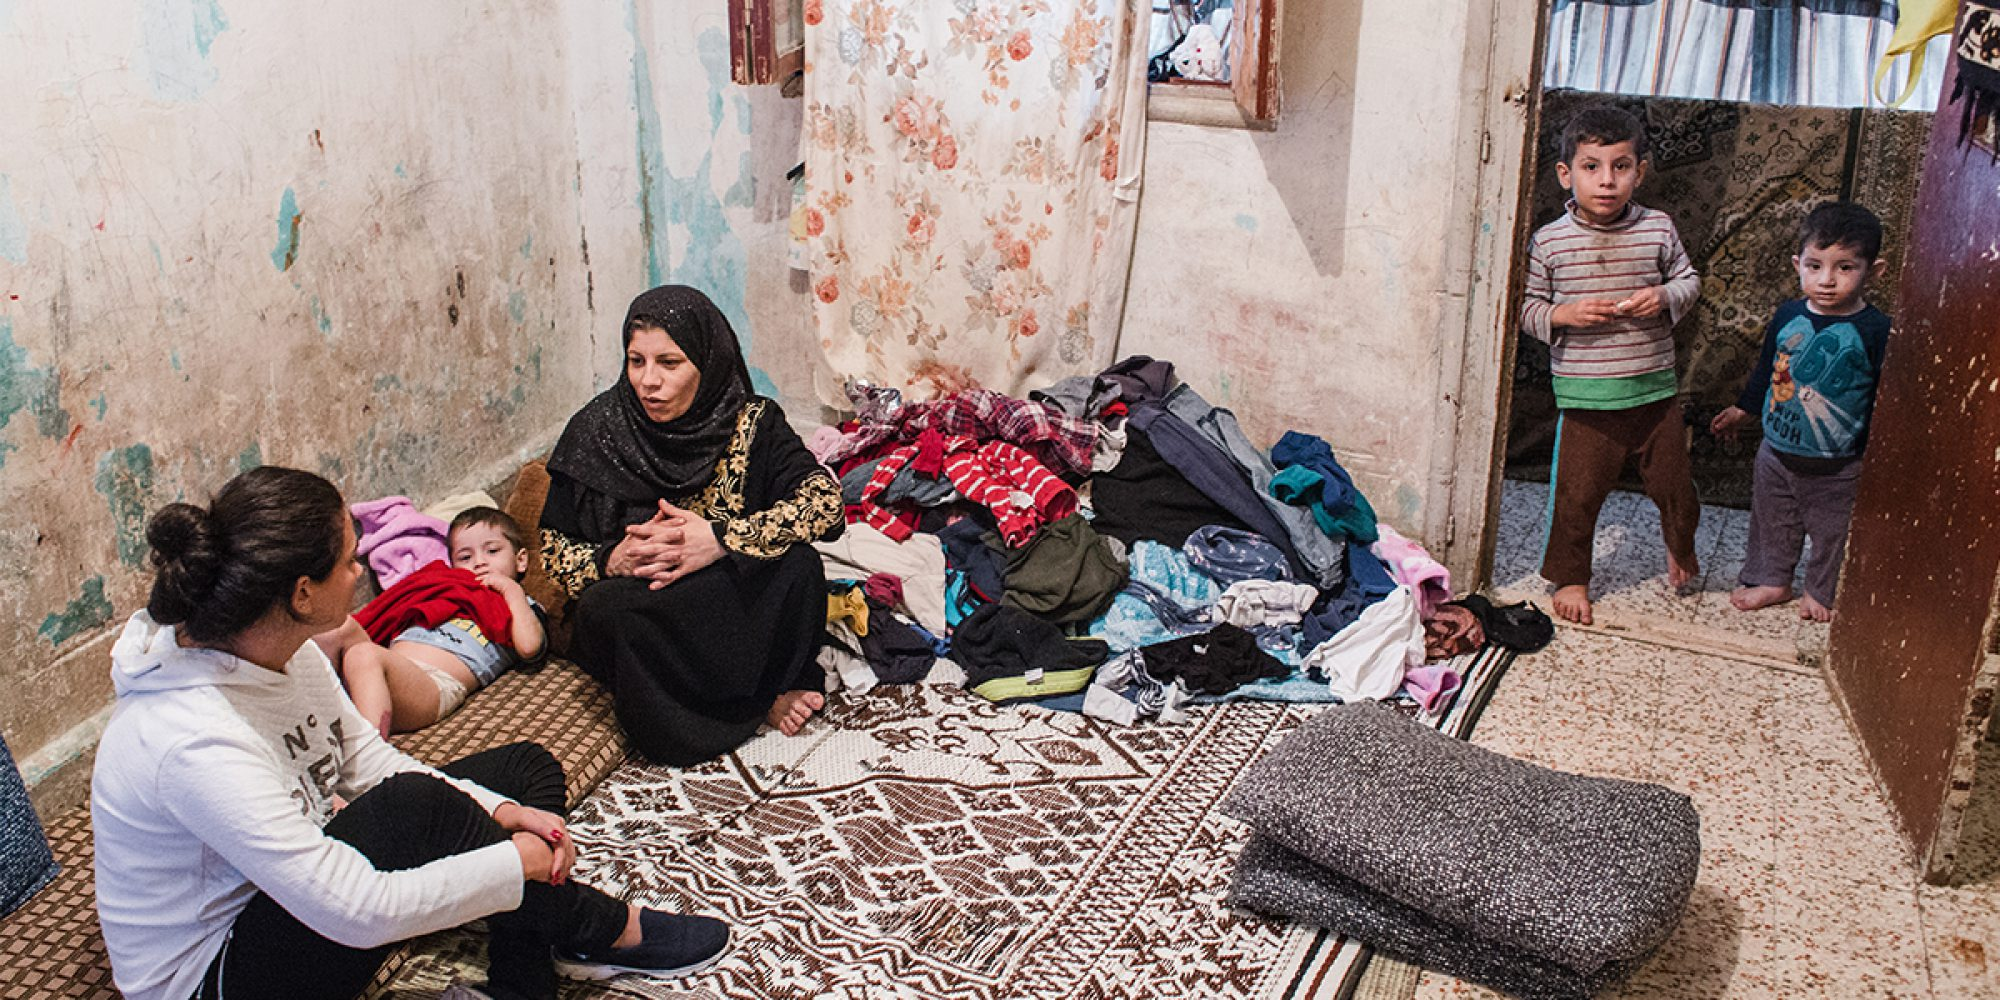 JRS Syria staff visits a Syrian family living in Beirut to conduct need assessments